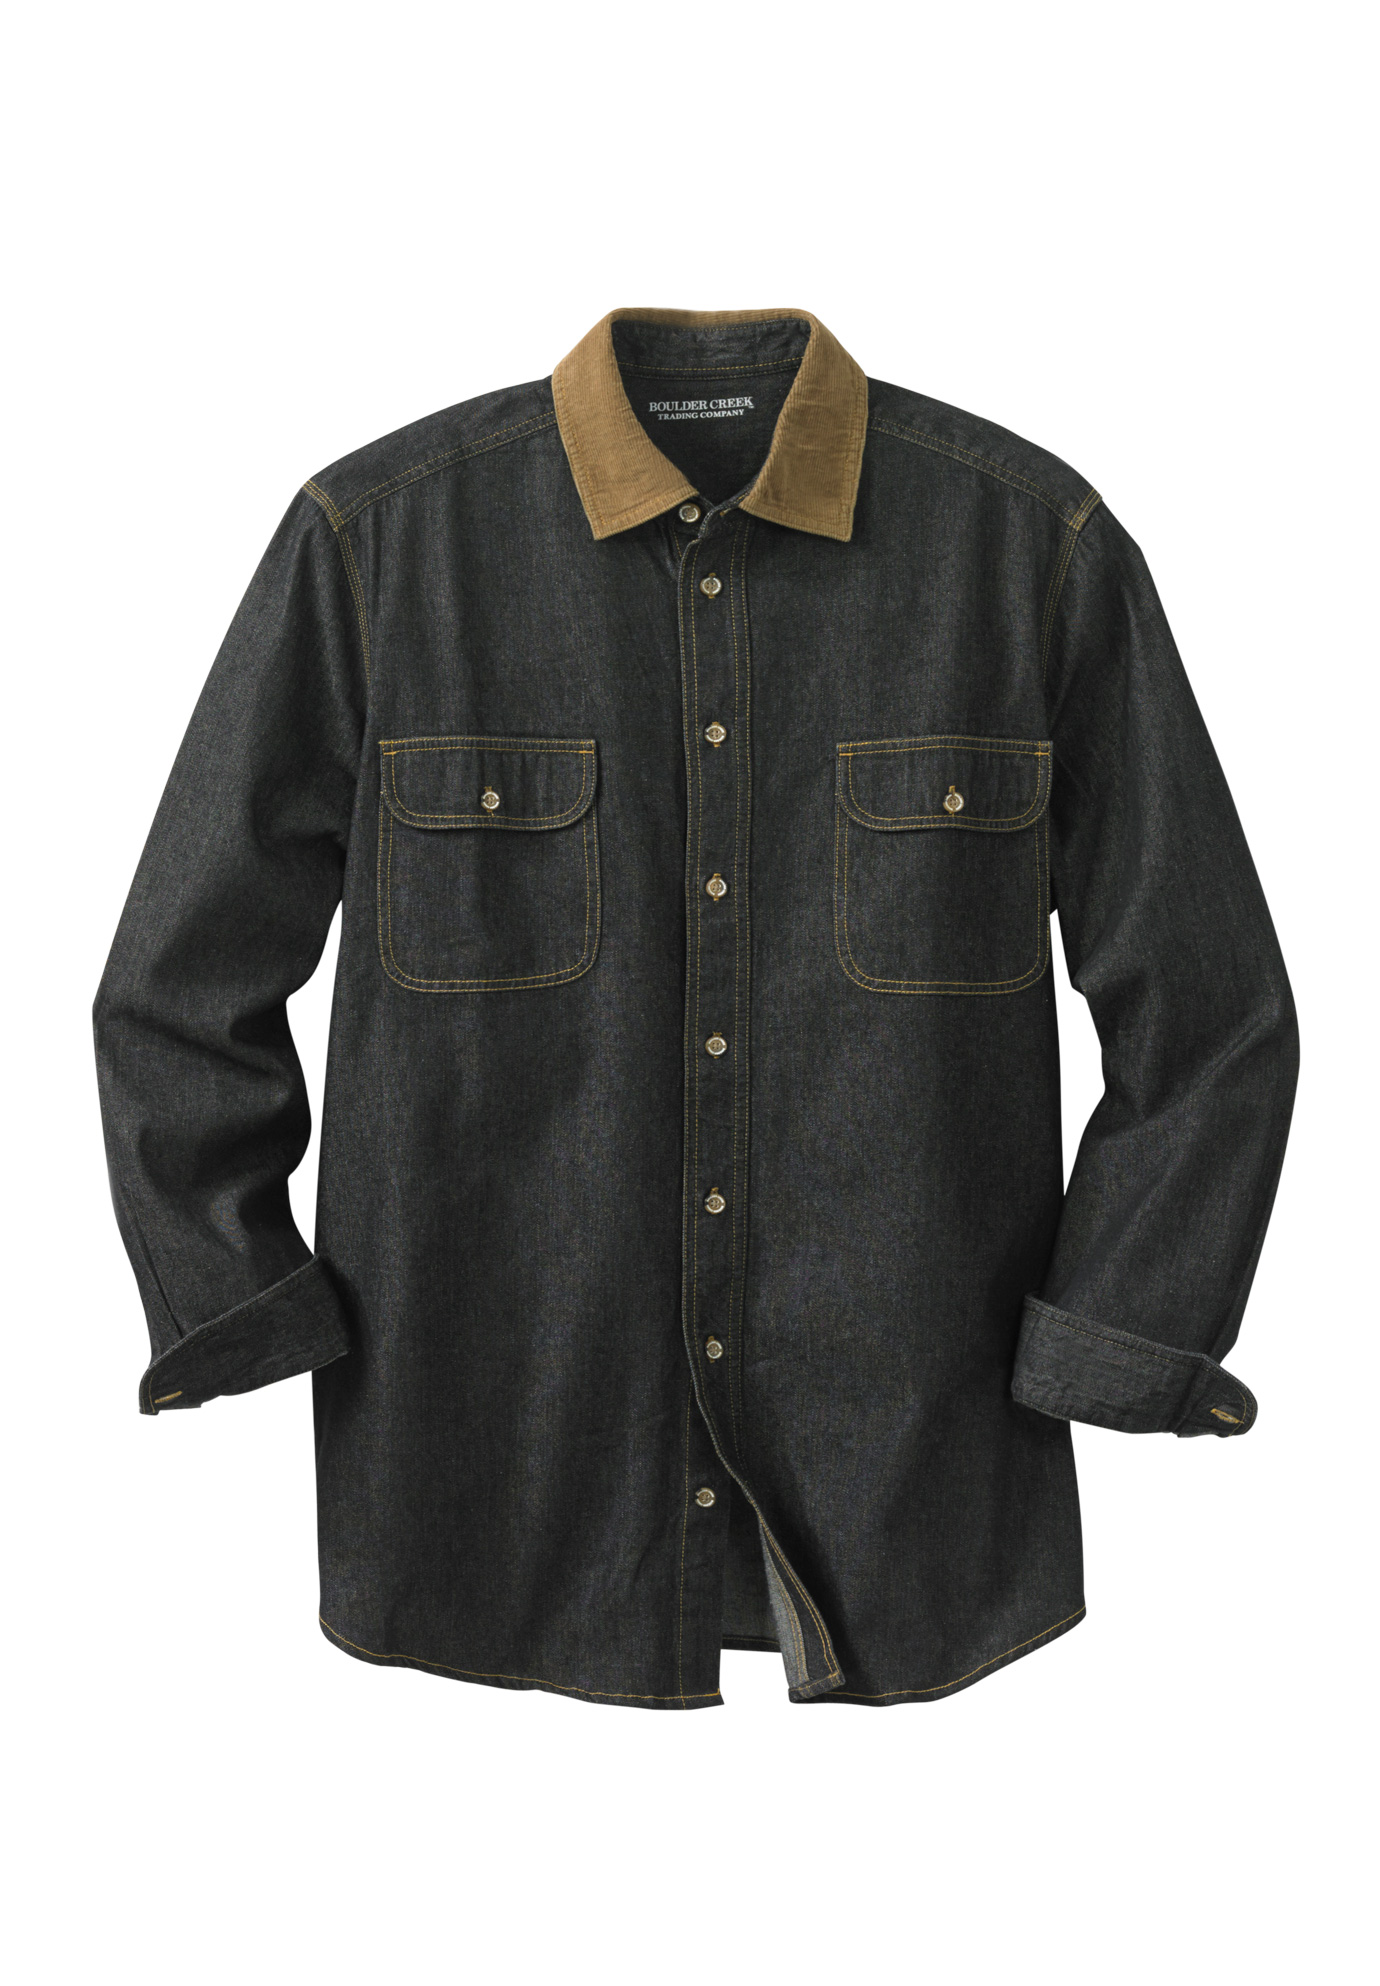 Long Sleeve Corduroy Collar Renegade Shirt by Boulder Creek®,